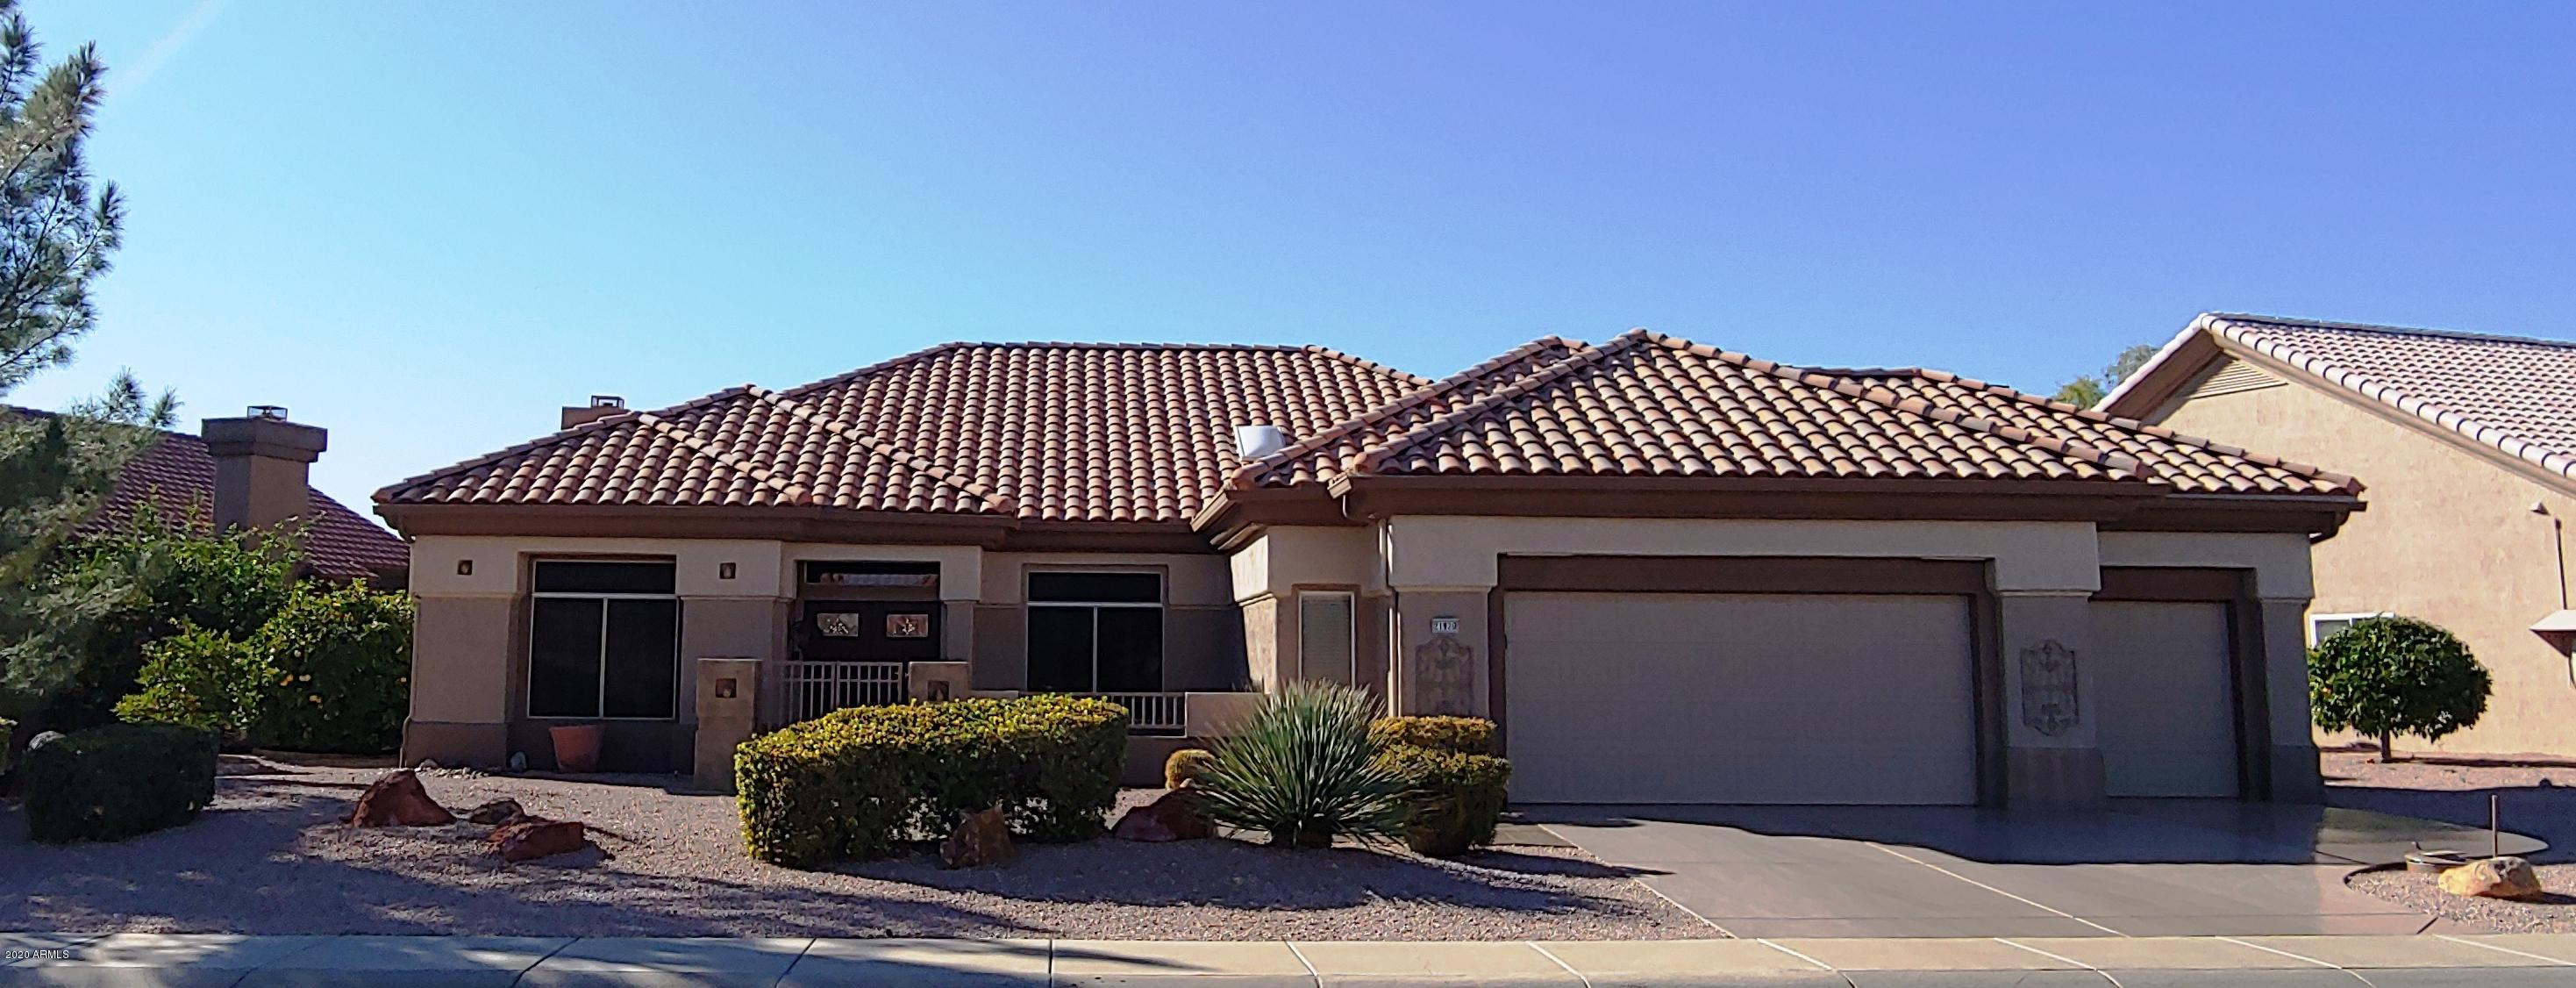 Photo of 21920 N ACAPULCO Drive, Sun City West, AZ 85375